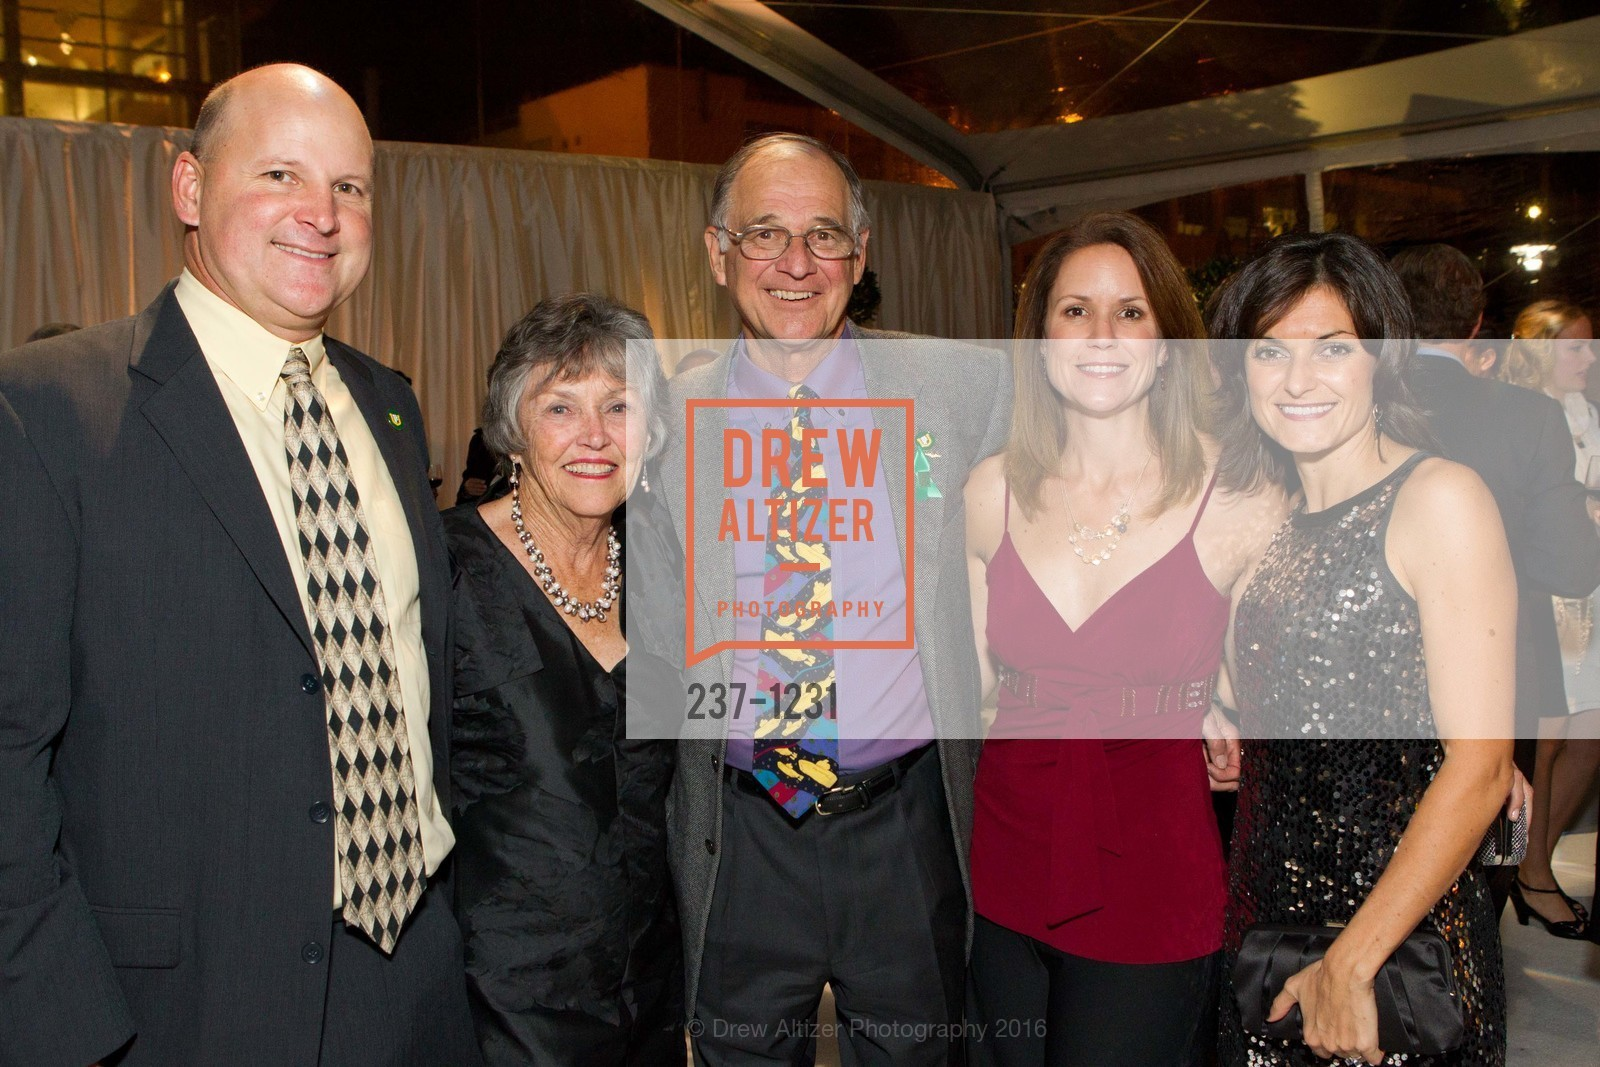 Jim Thompson, Claudia Salquist, Roger Salquist, Kathleen Thompson, Monica Salquist, Photo #237-1231